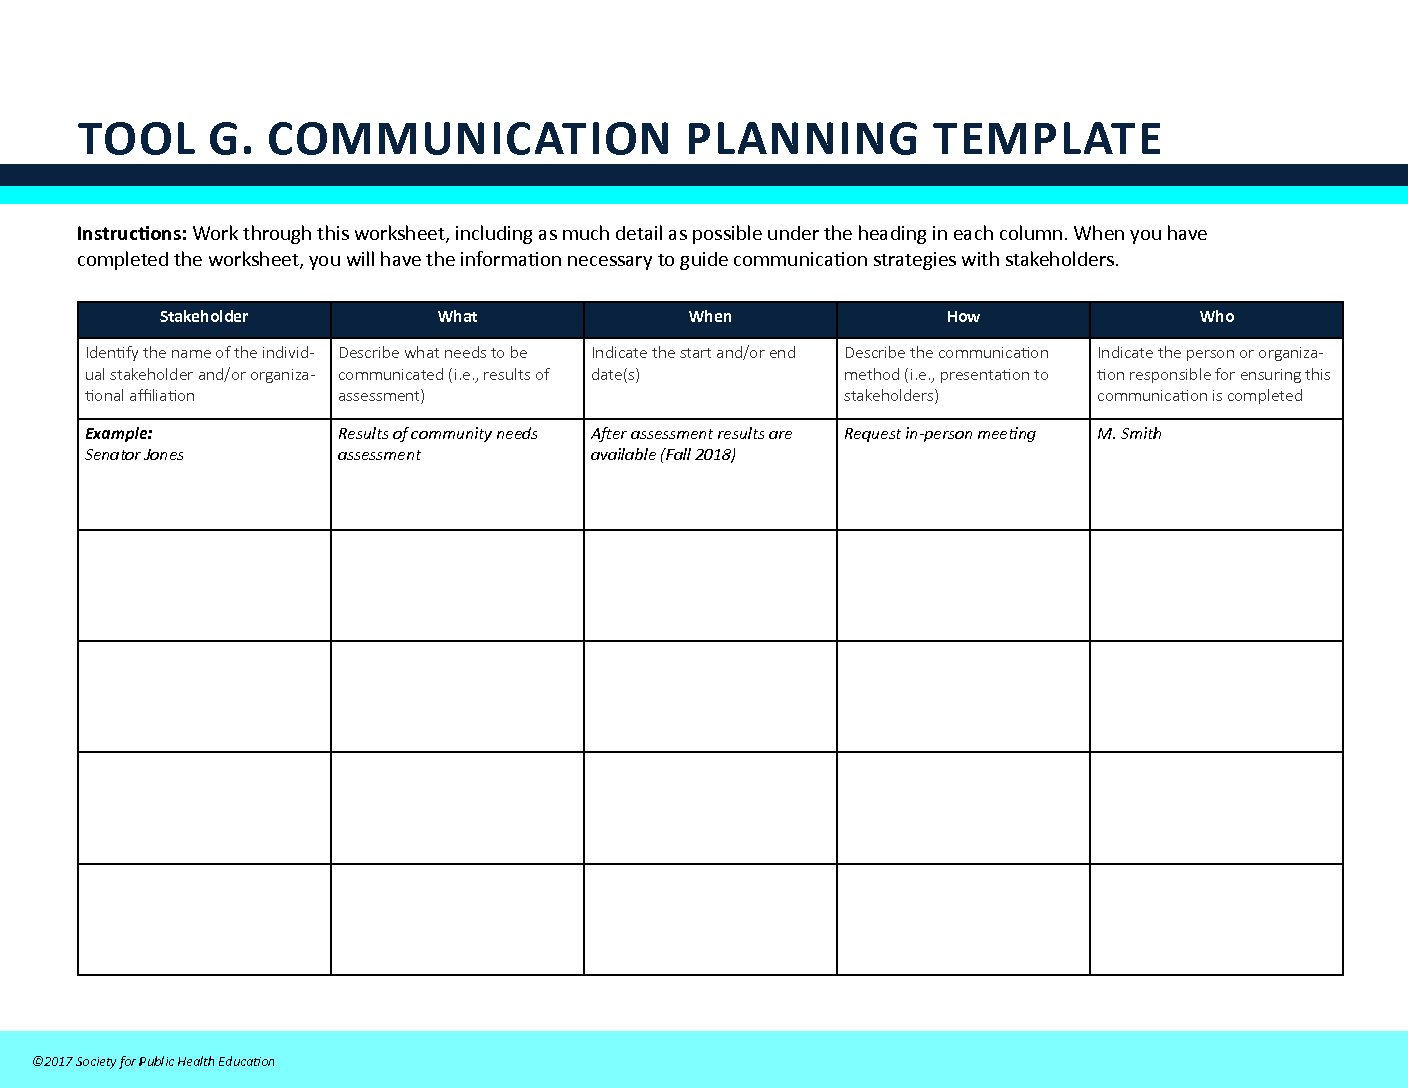 Toolkit sustainability partnering4health tool gcommunication planning template pronofoot35fo Gallery